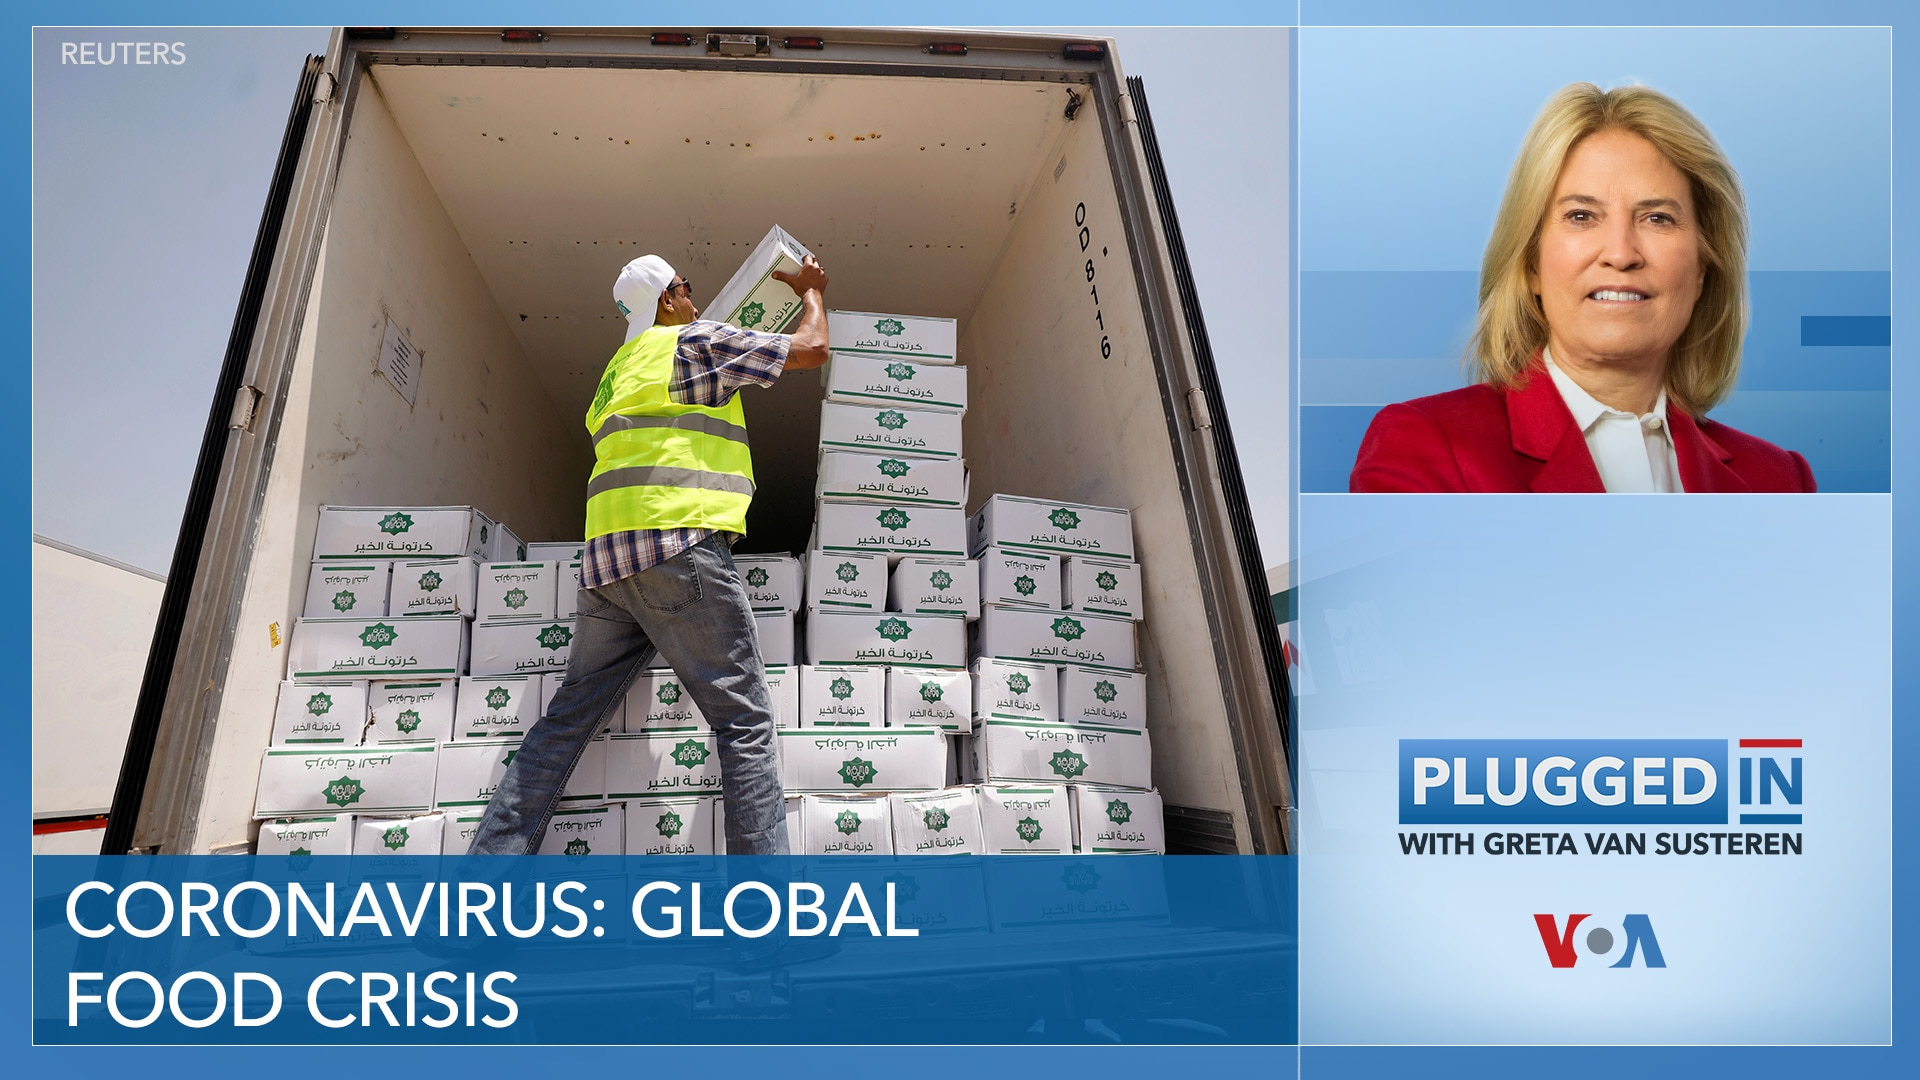 Plugged In with Greta Van Susteren-Coronavirus: Global Food Crisis